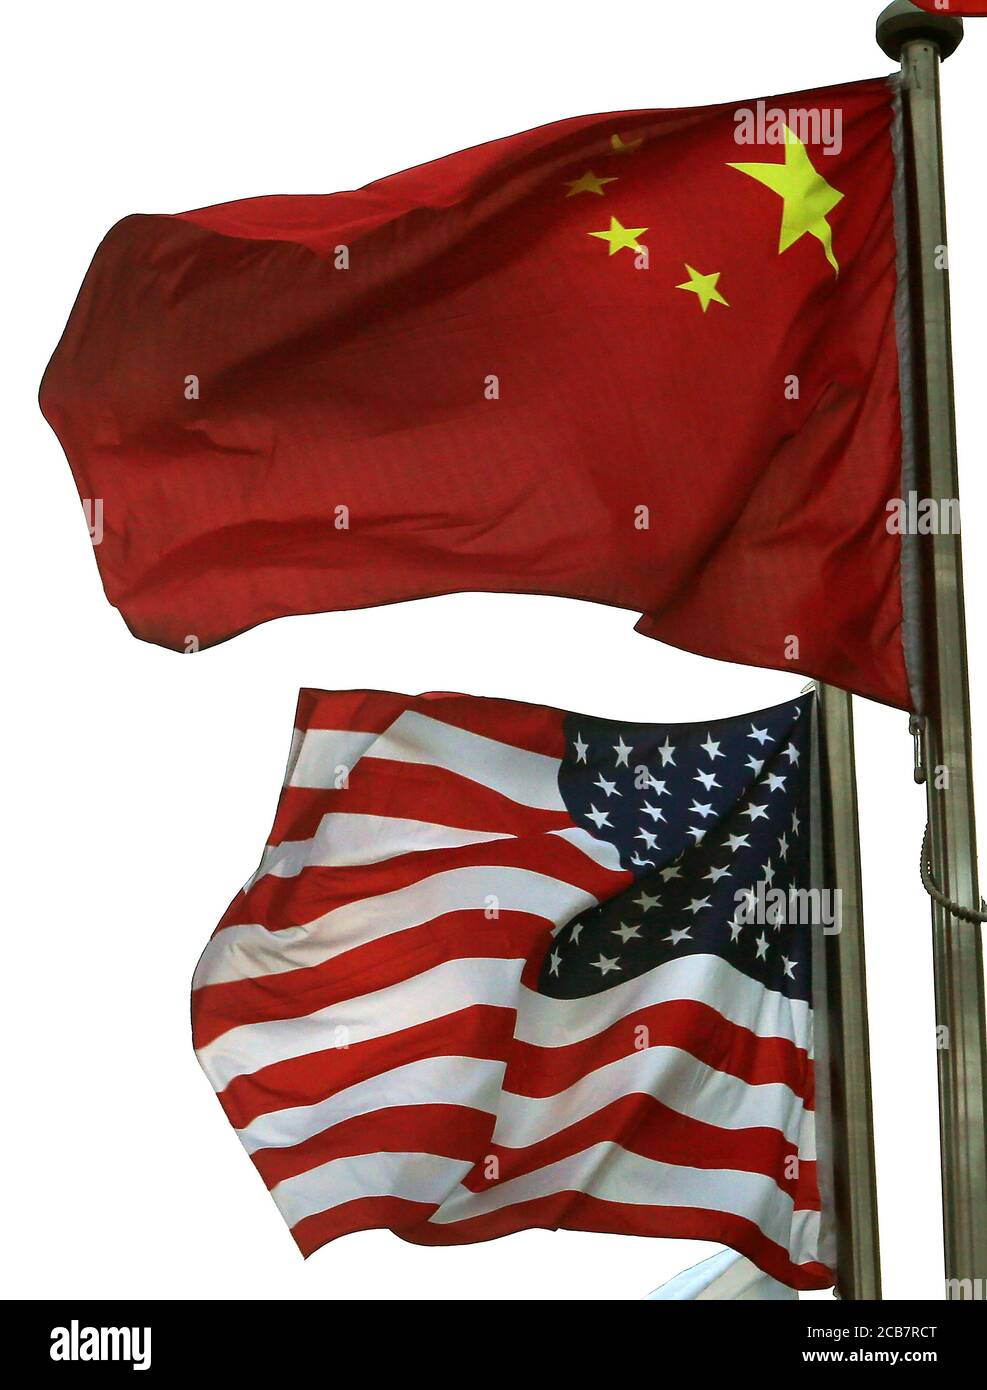 Beijing, China. 11th Aug, 2020. Both the American and Chinese national flags fly together outside an American hotel in downtown Beijing on Tuesday, August 11, 2020. Tensions between the U.S. and China continue to increase due to issues involving Hong Kong, Xinjiang, Huawei, Taiwan, espionage and China's military expansion in the South China Sea. Photo by Stephen Shaver/UPI Credit: UPI/Alamy Live News Stock Photo